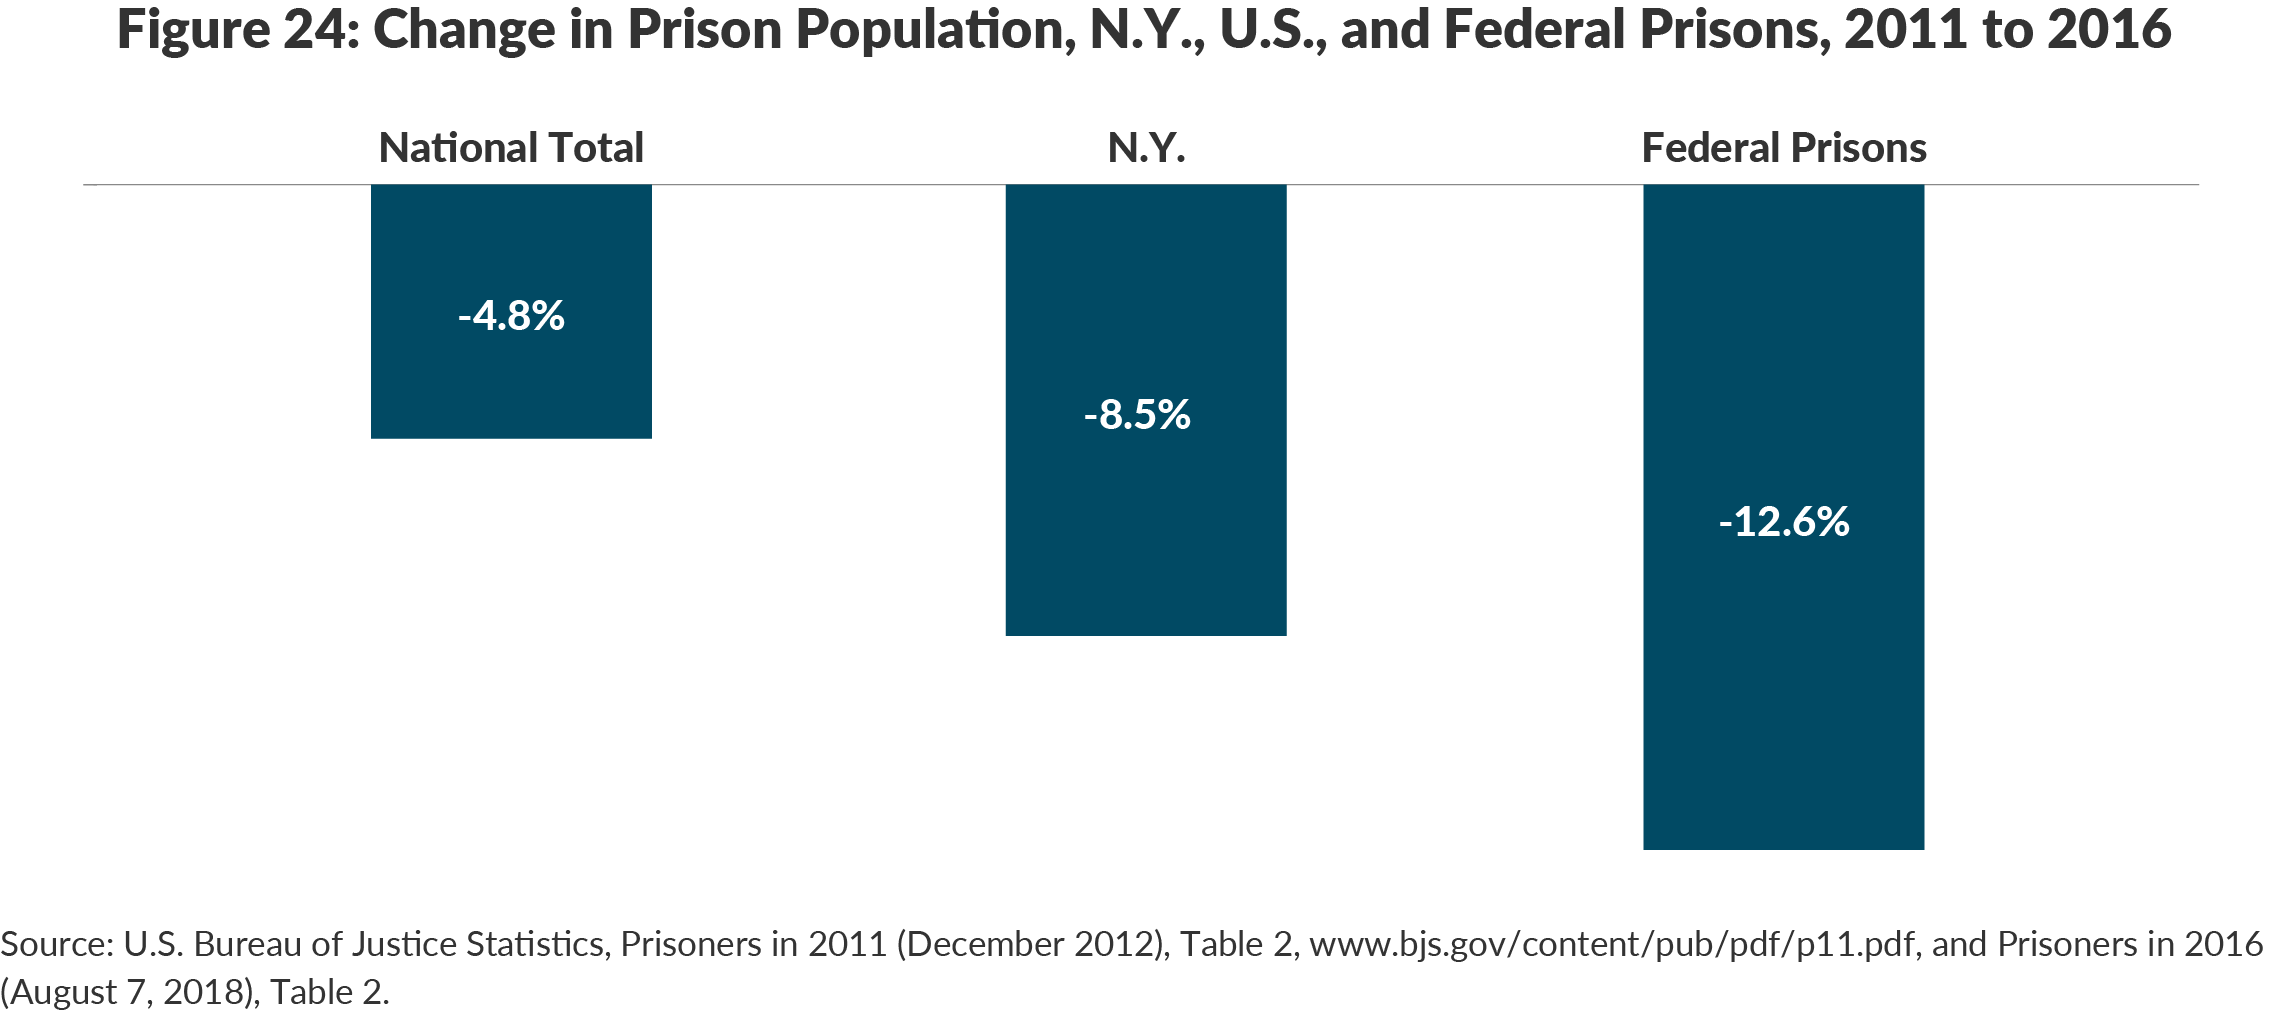 Figure 24: Change in Prison Population, N.Y., U.S., and Federal Prisons, 2011 to 2016